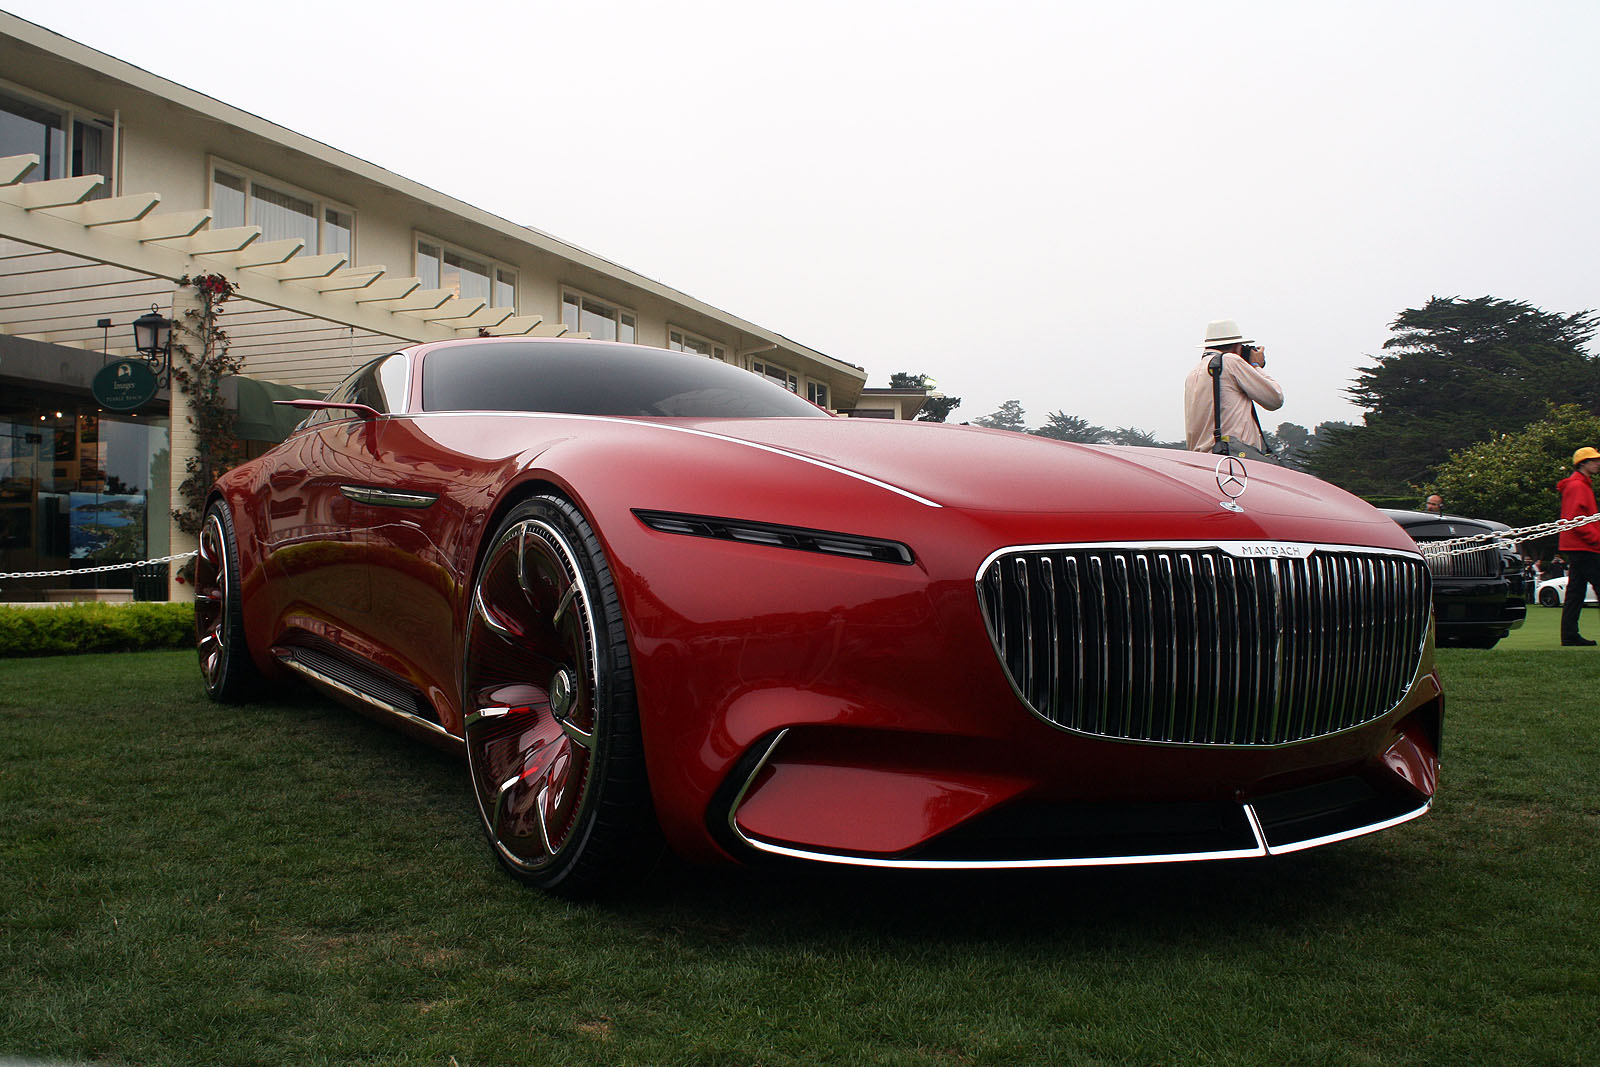 Vision Mercedes-Maybach 6 Concept Unveiled at Pebble Beach